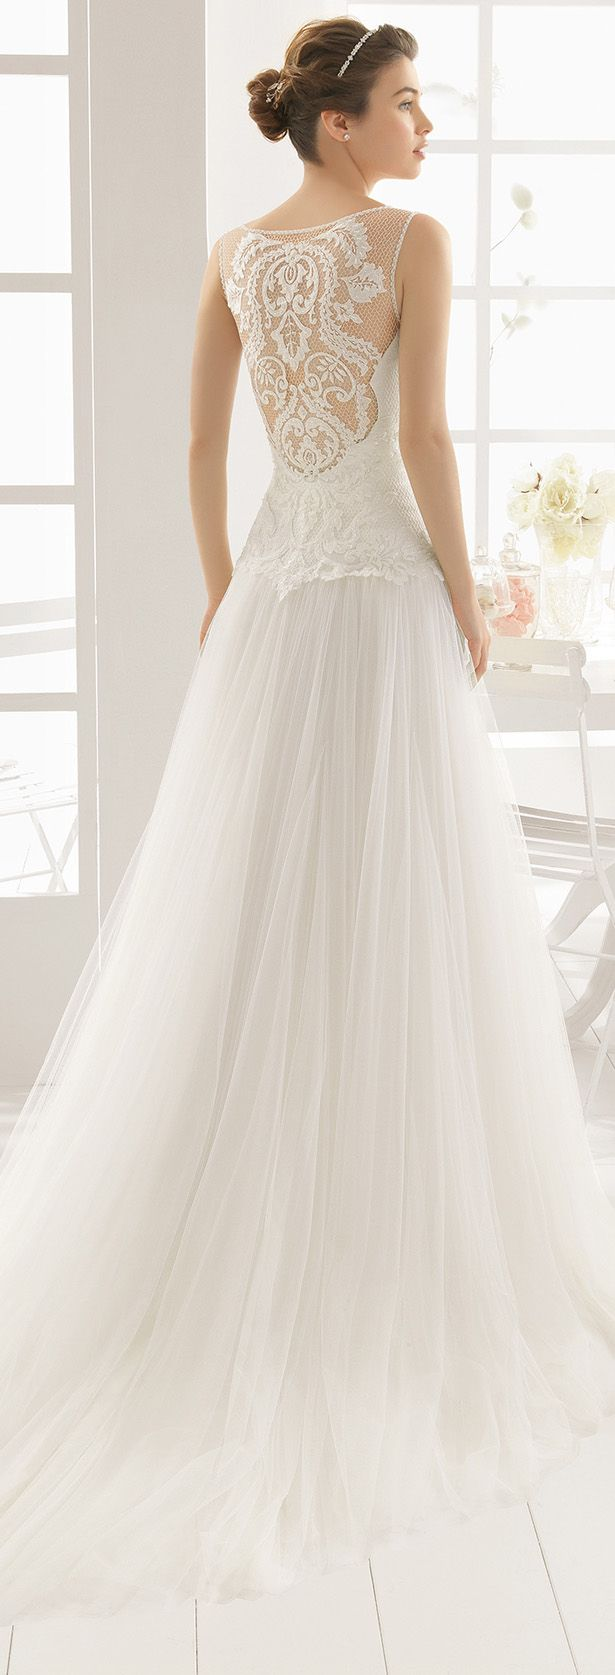 Aire Barcelona 2016 Wedding Dress - Belle The Magazine